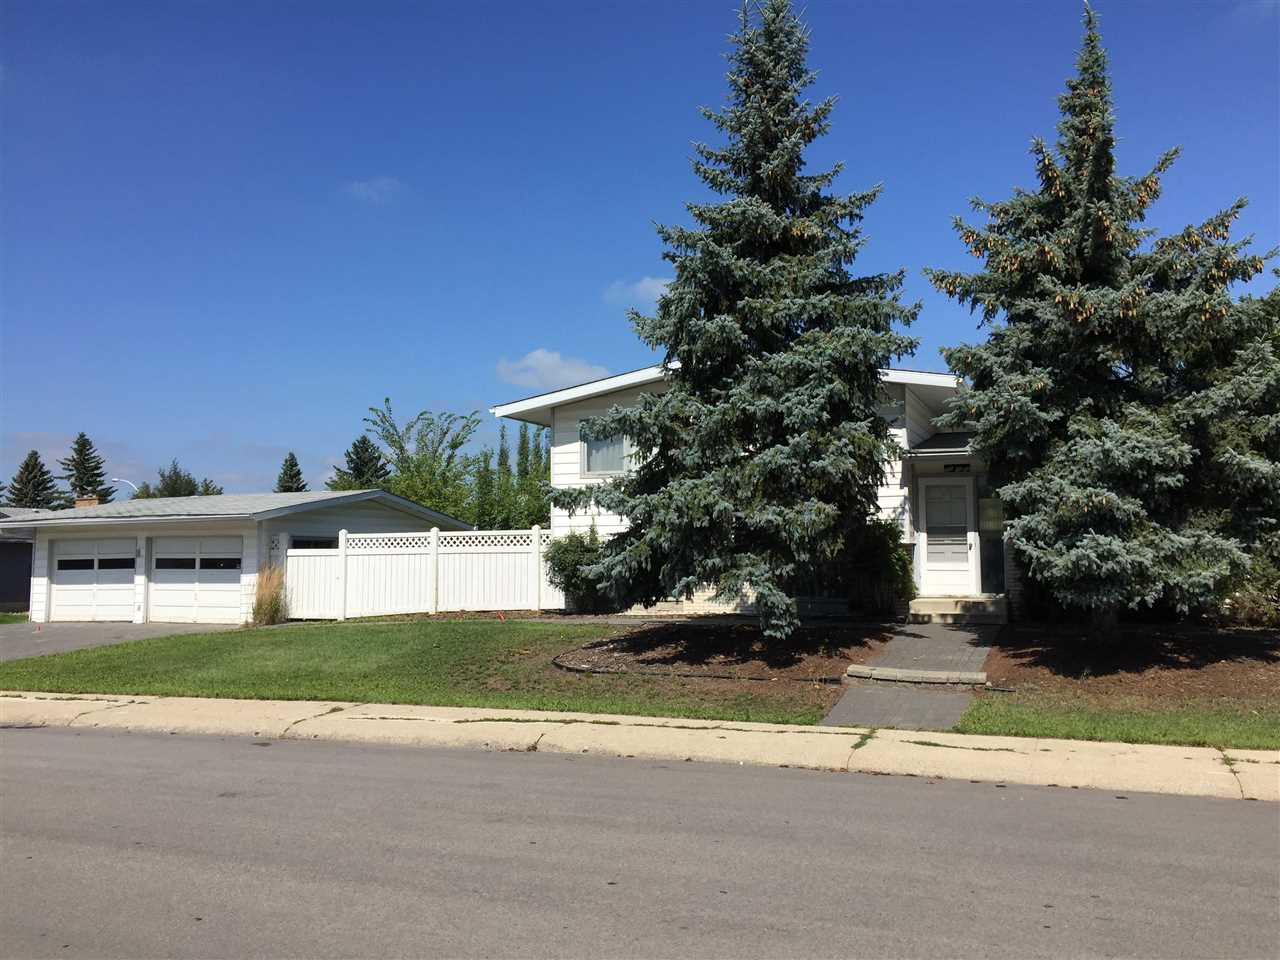 Main Photo: 9404 149 Avenue in Edmonton: Zone 02 House for sale : MLS® # E4076977